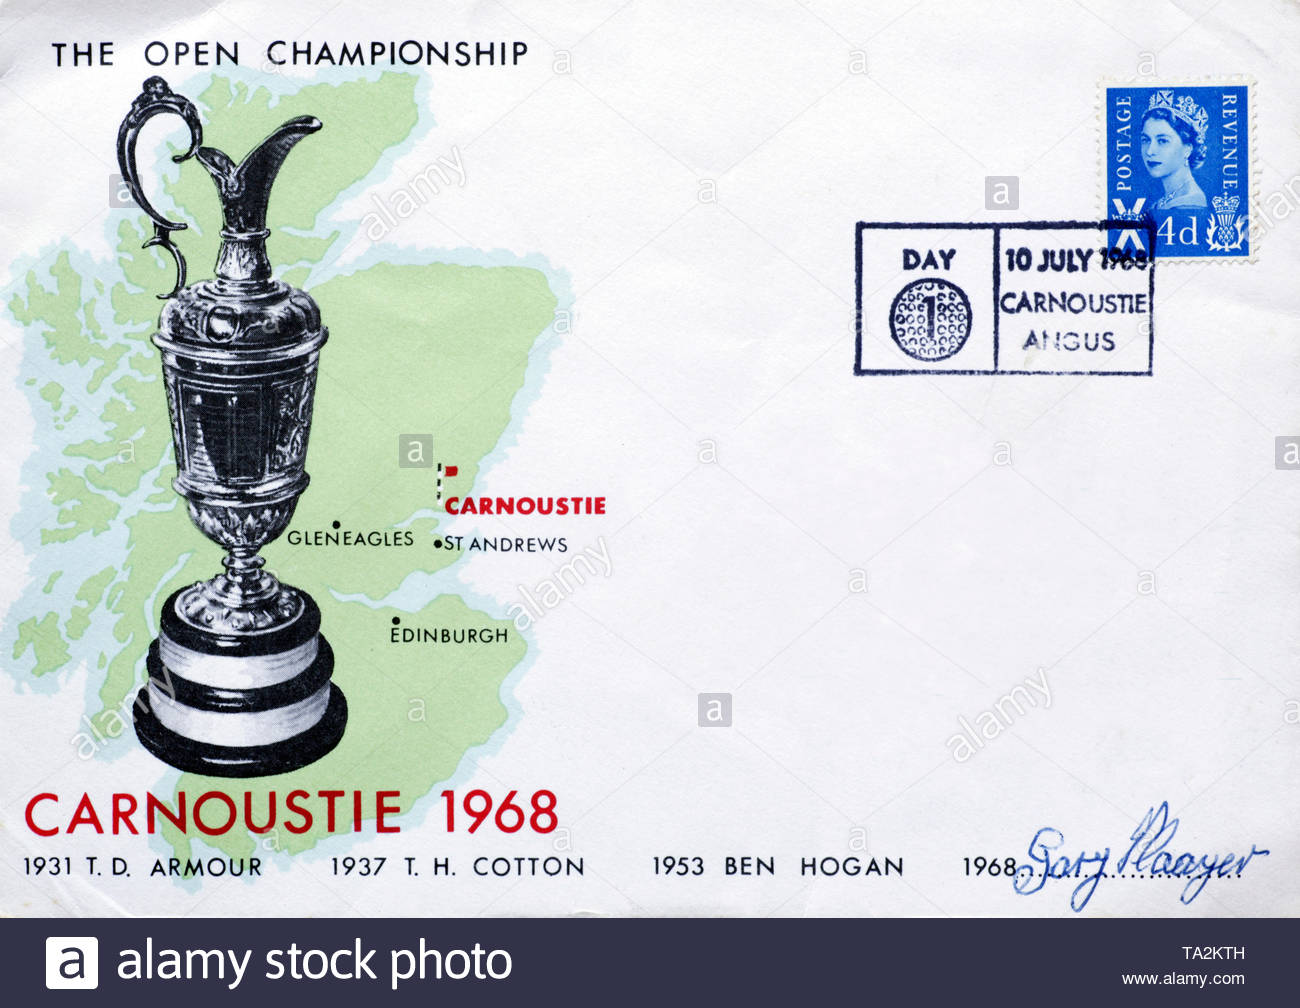 Post Office First Day Cover 1968, The Open Championship Carnoustie Scotland - Stock Image